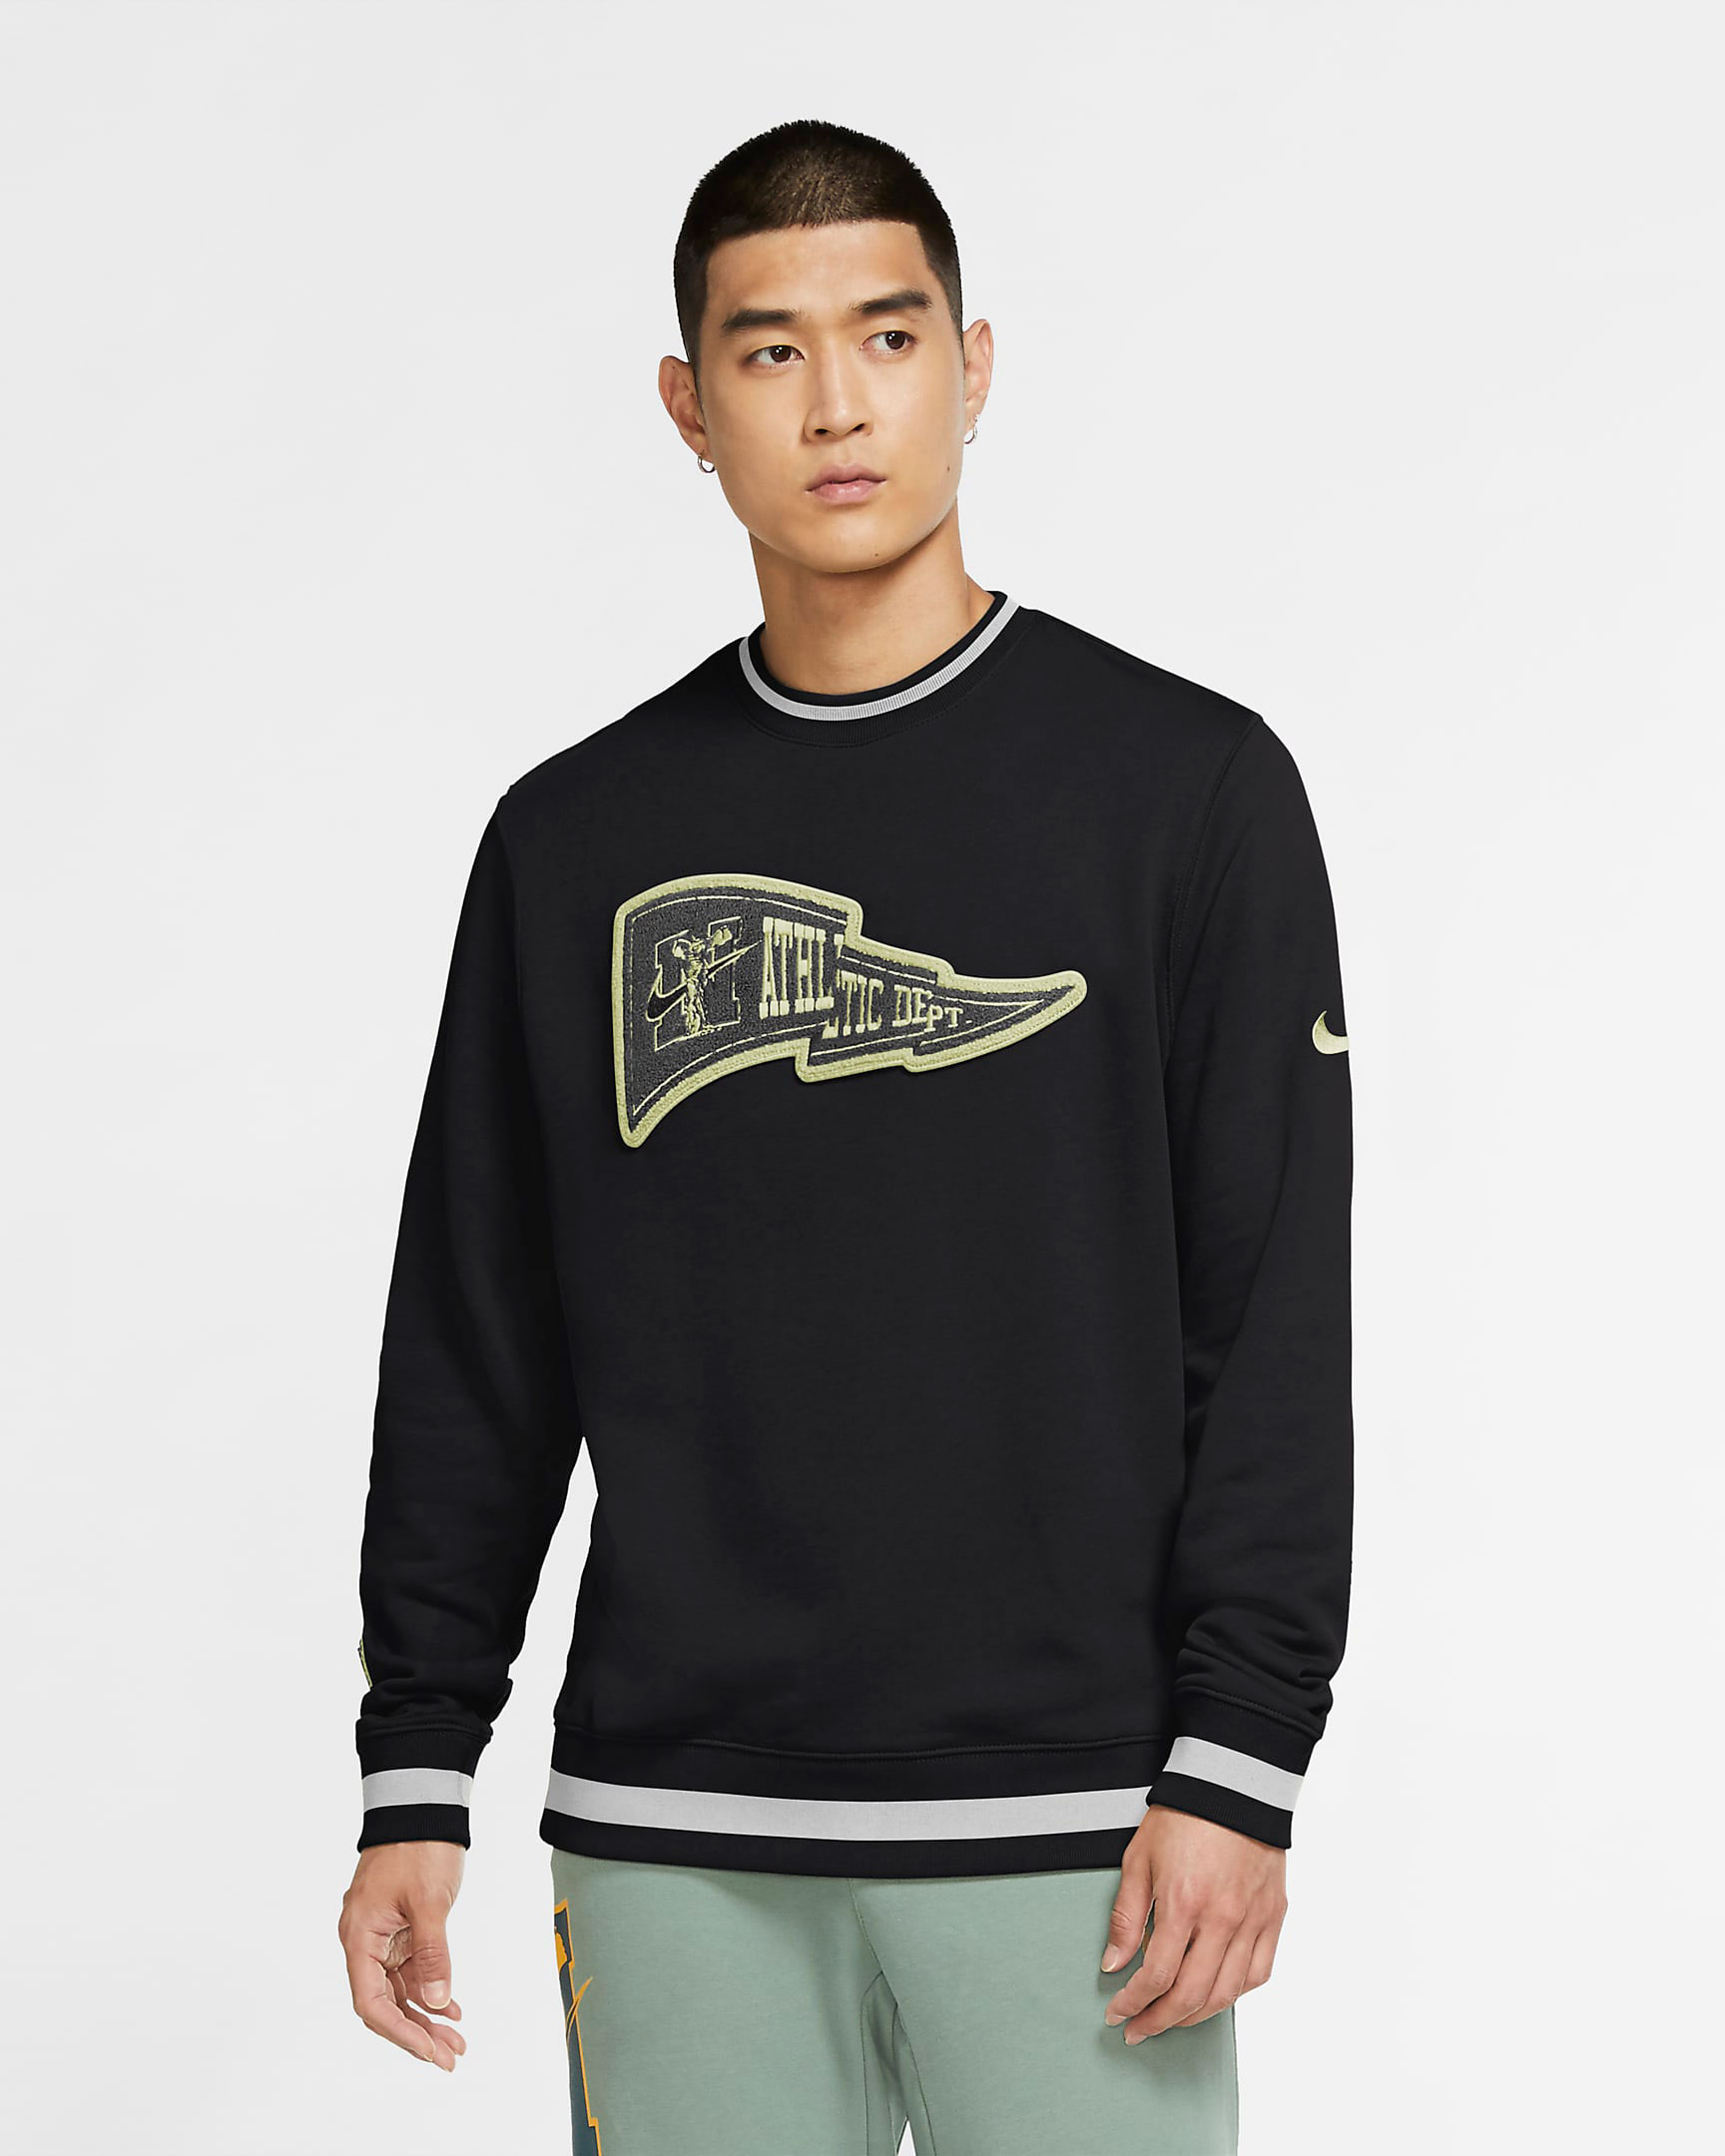 nike-air-max-95-neon-2020-sweatshirt